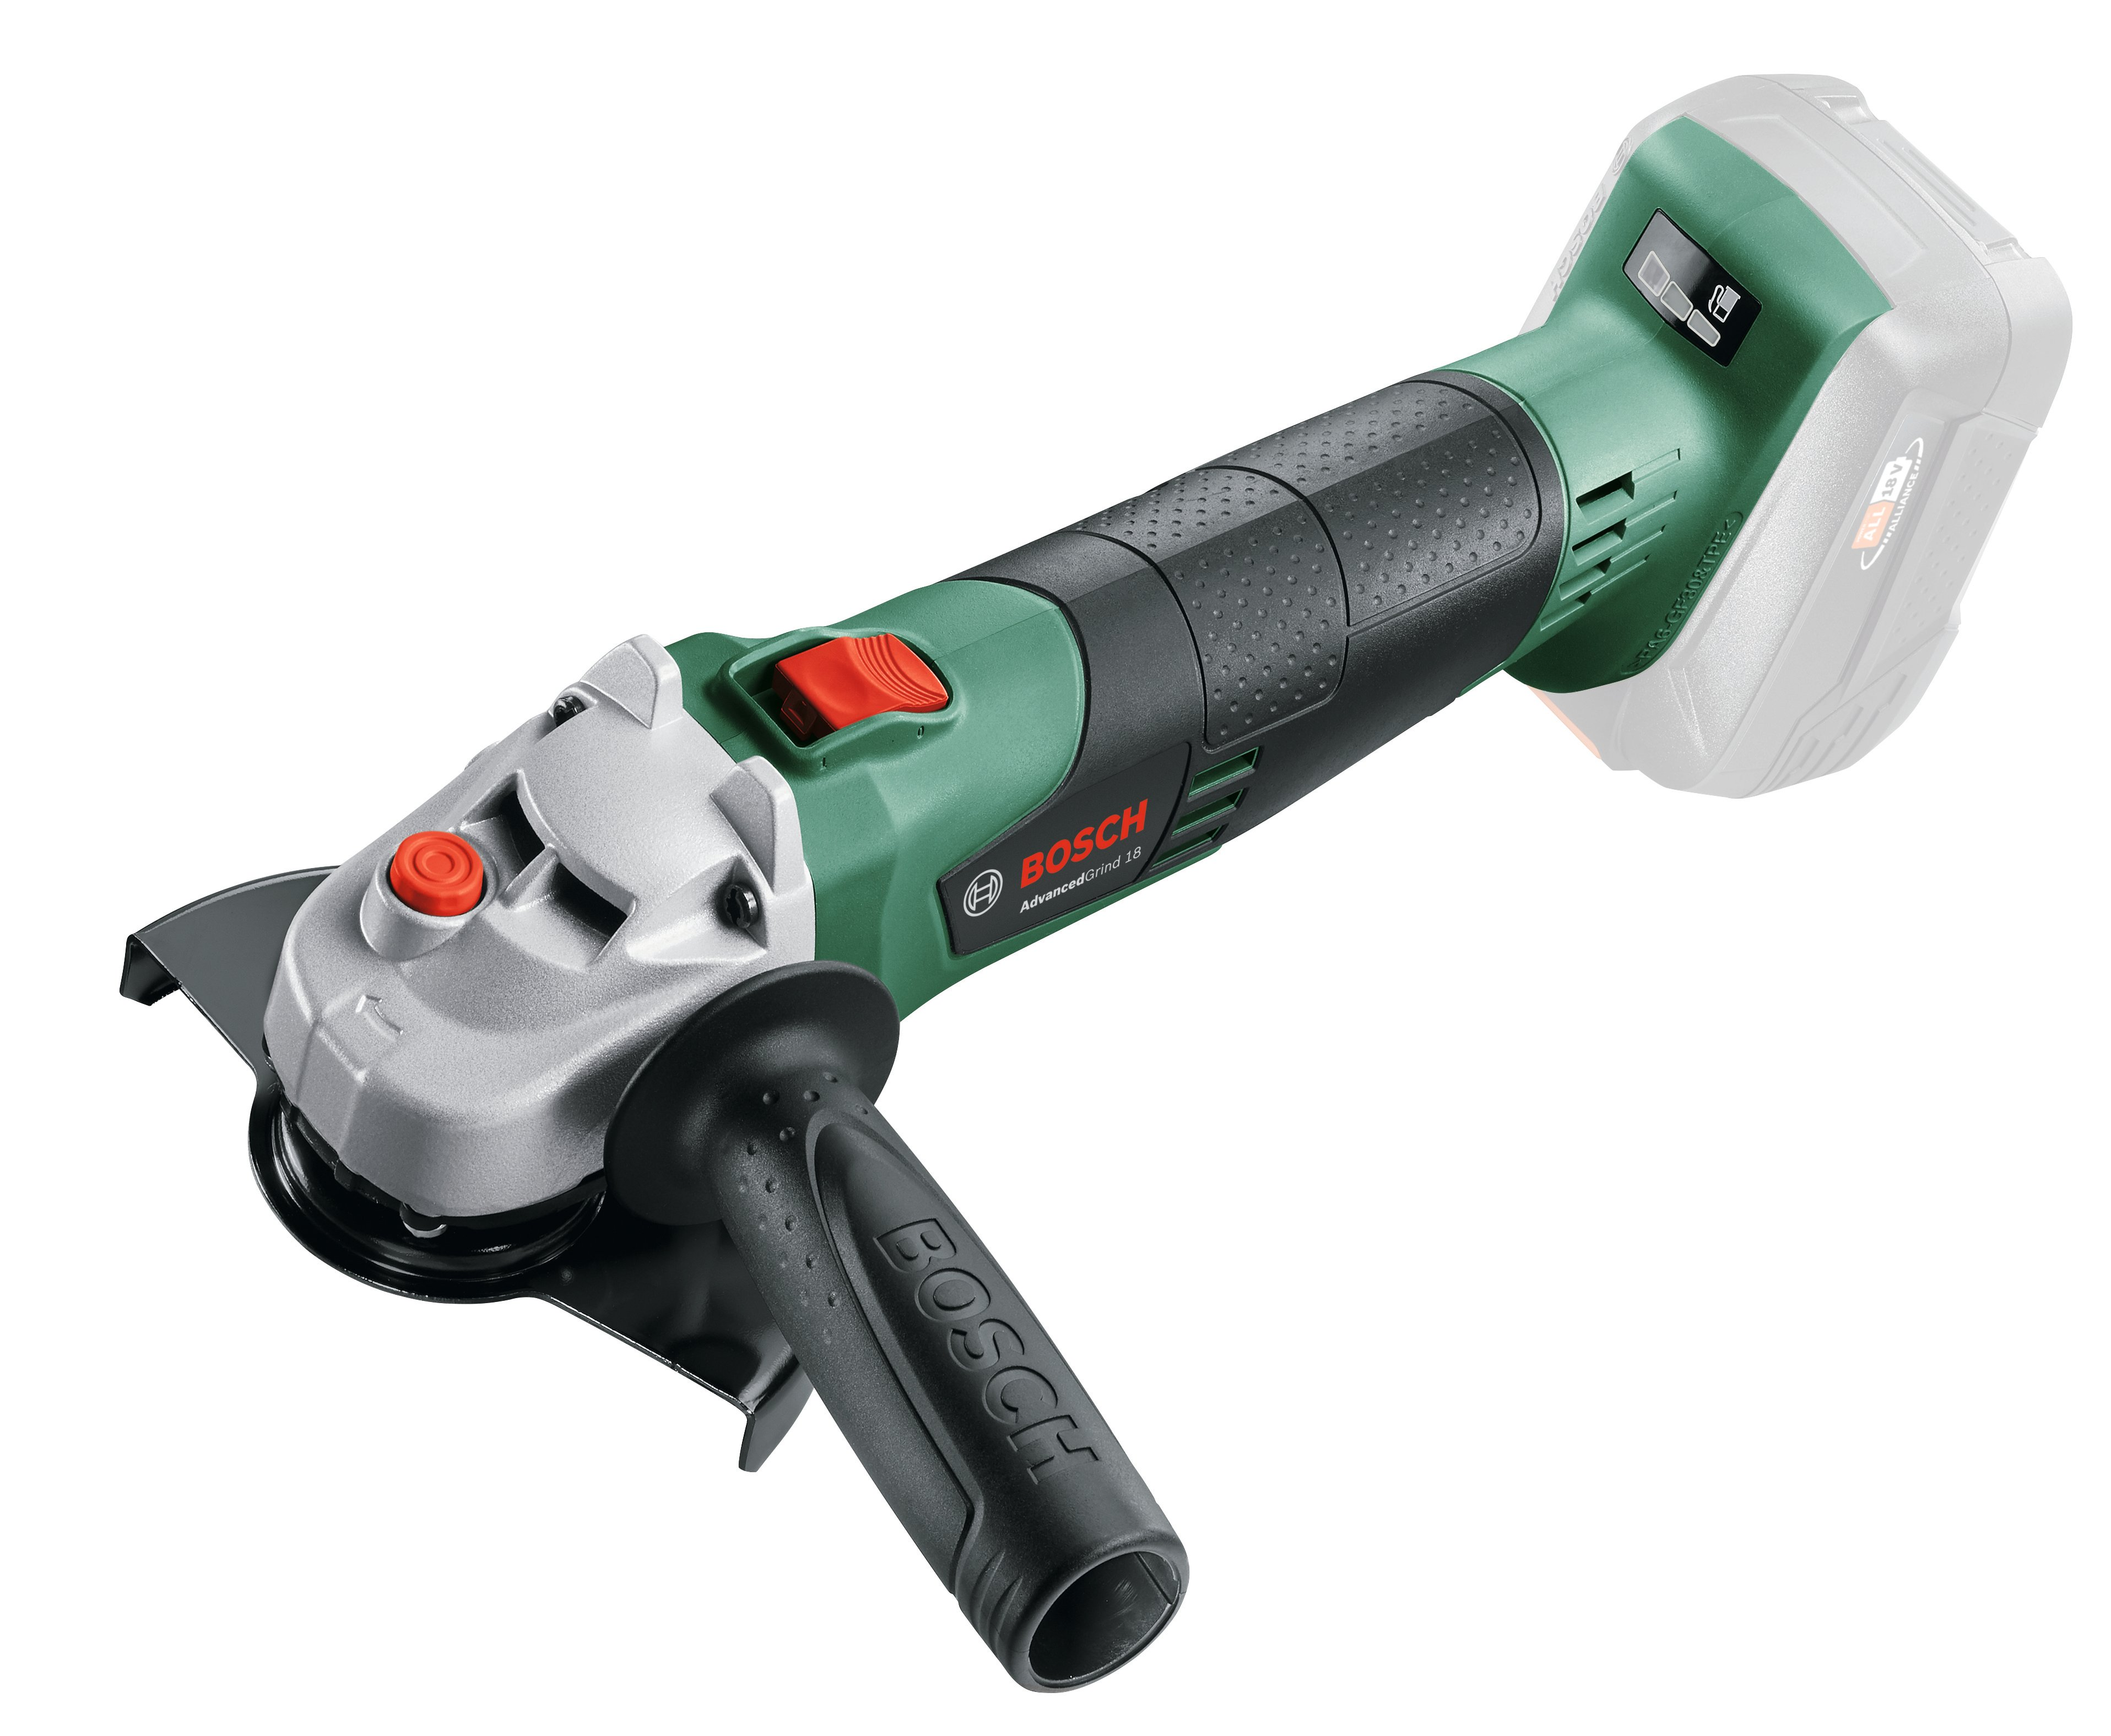 Bosch - Cordless Angel Grinder (No Battery & Charger)